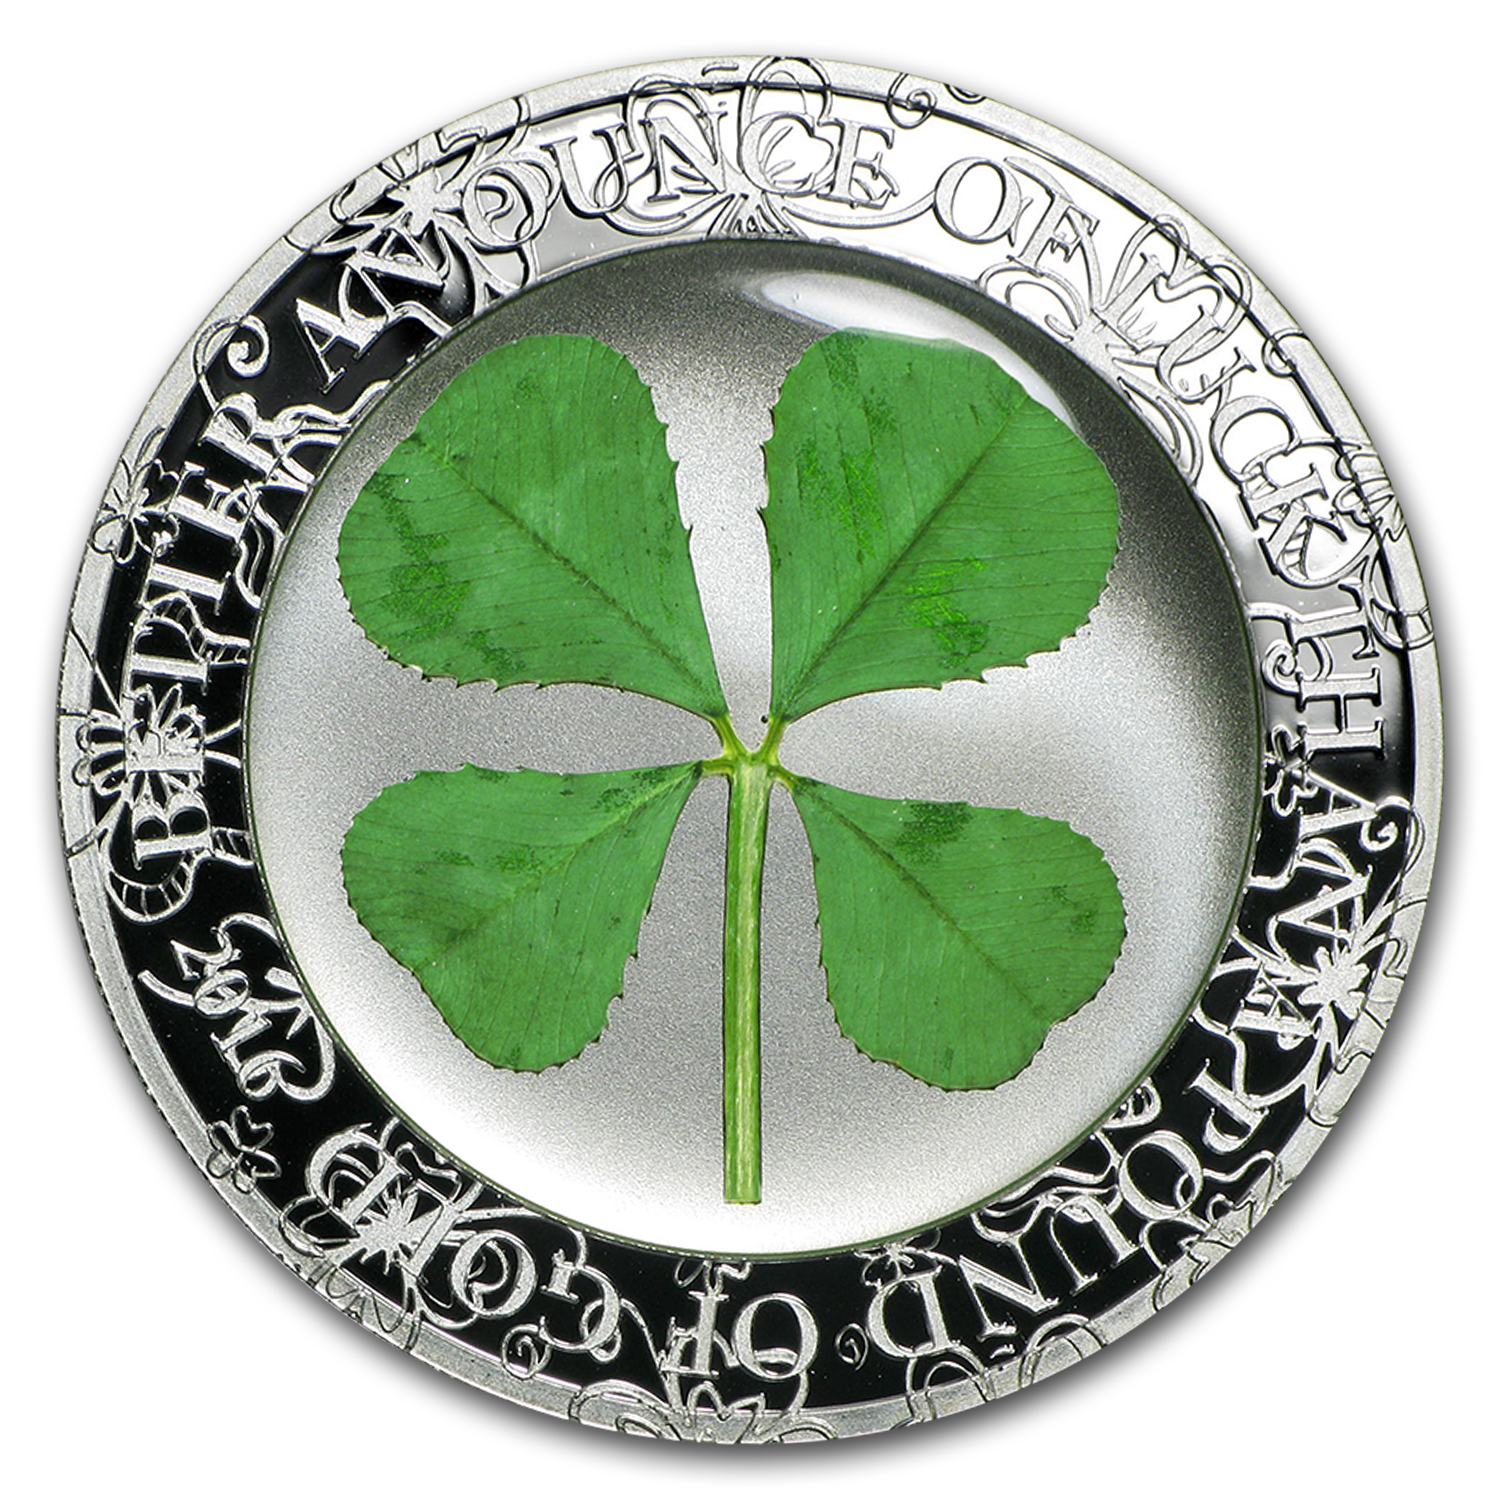 2016 Palau 1 oz Silver $5 Four-Leaf Clover Ounce of Luck Proof